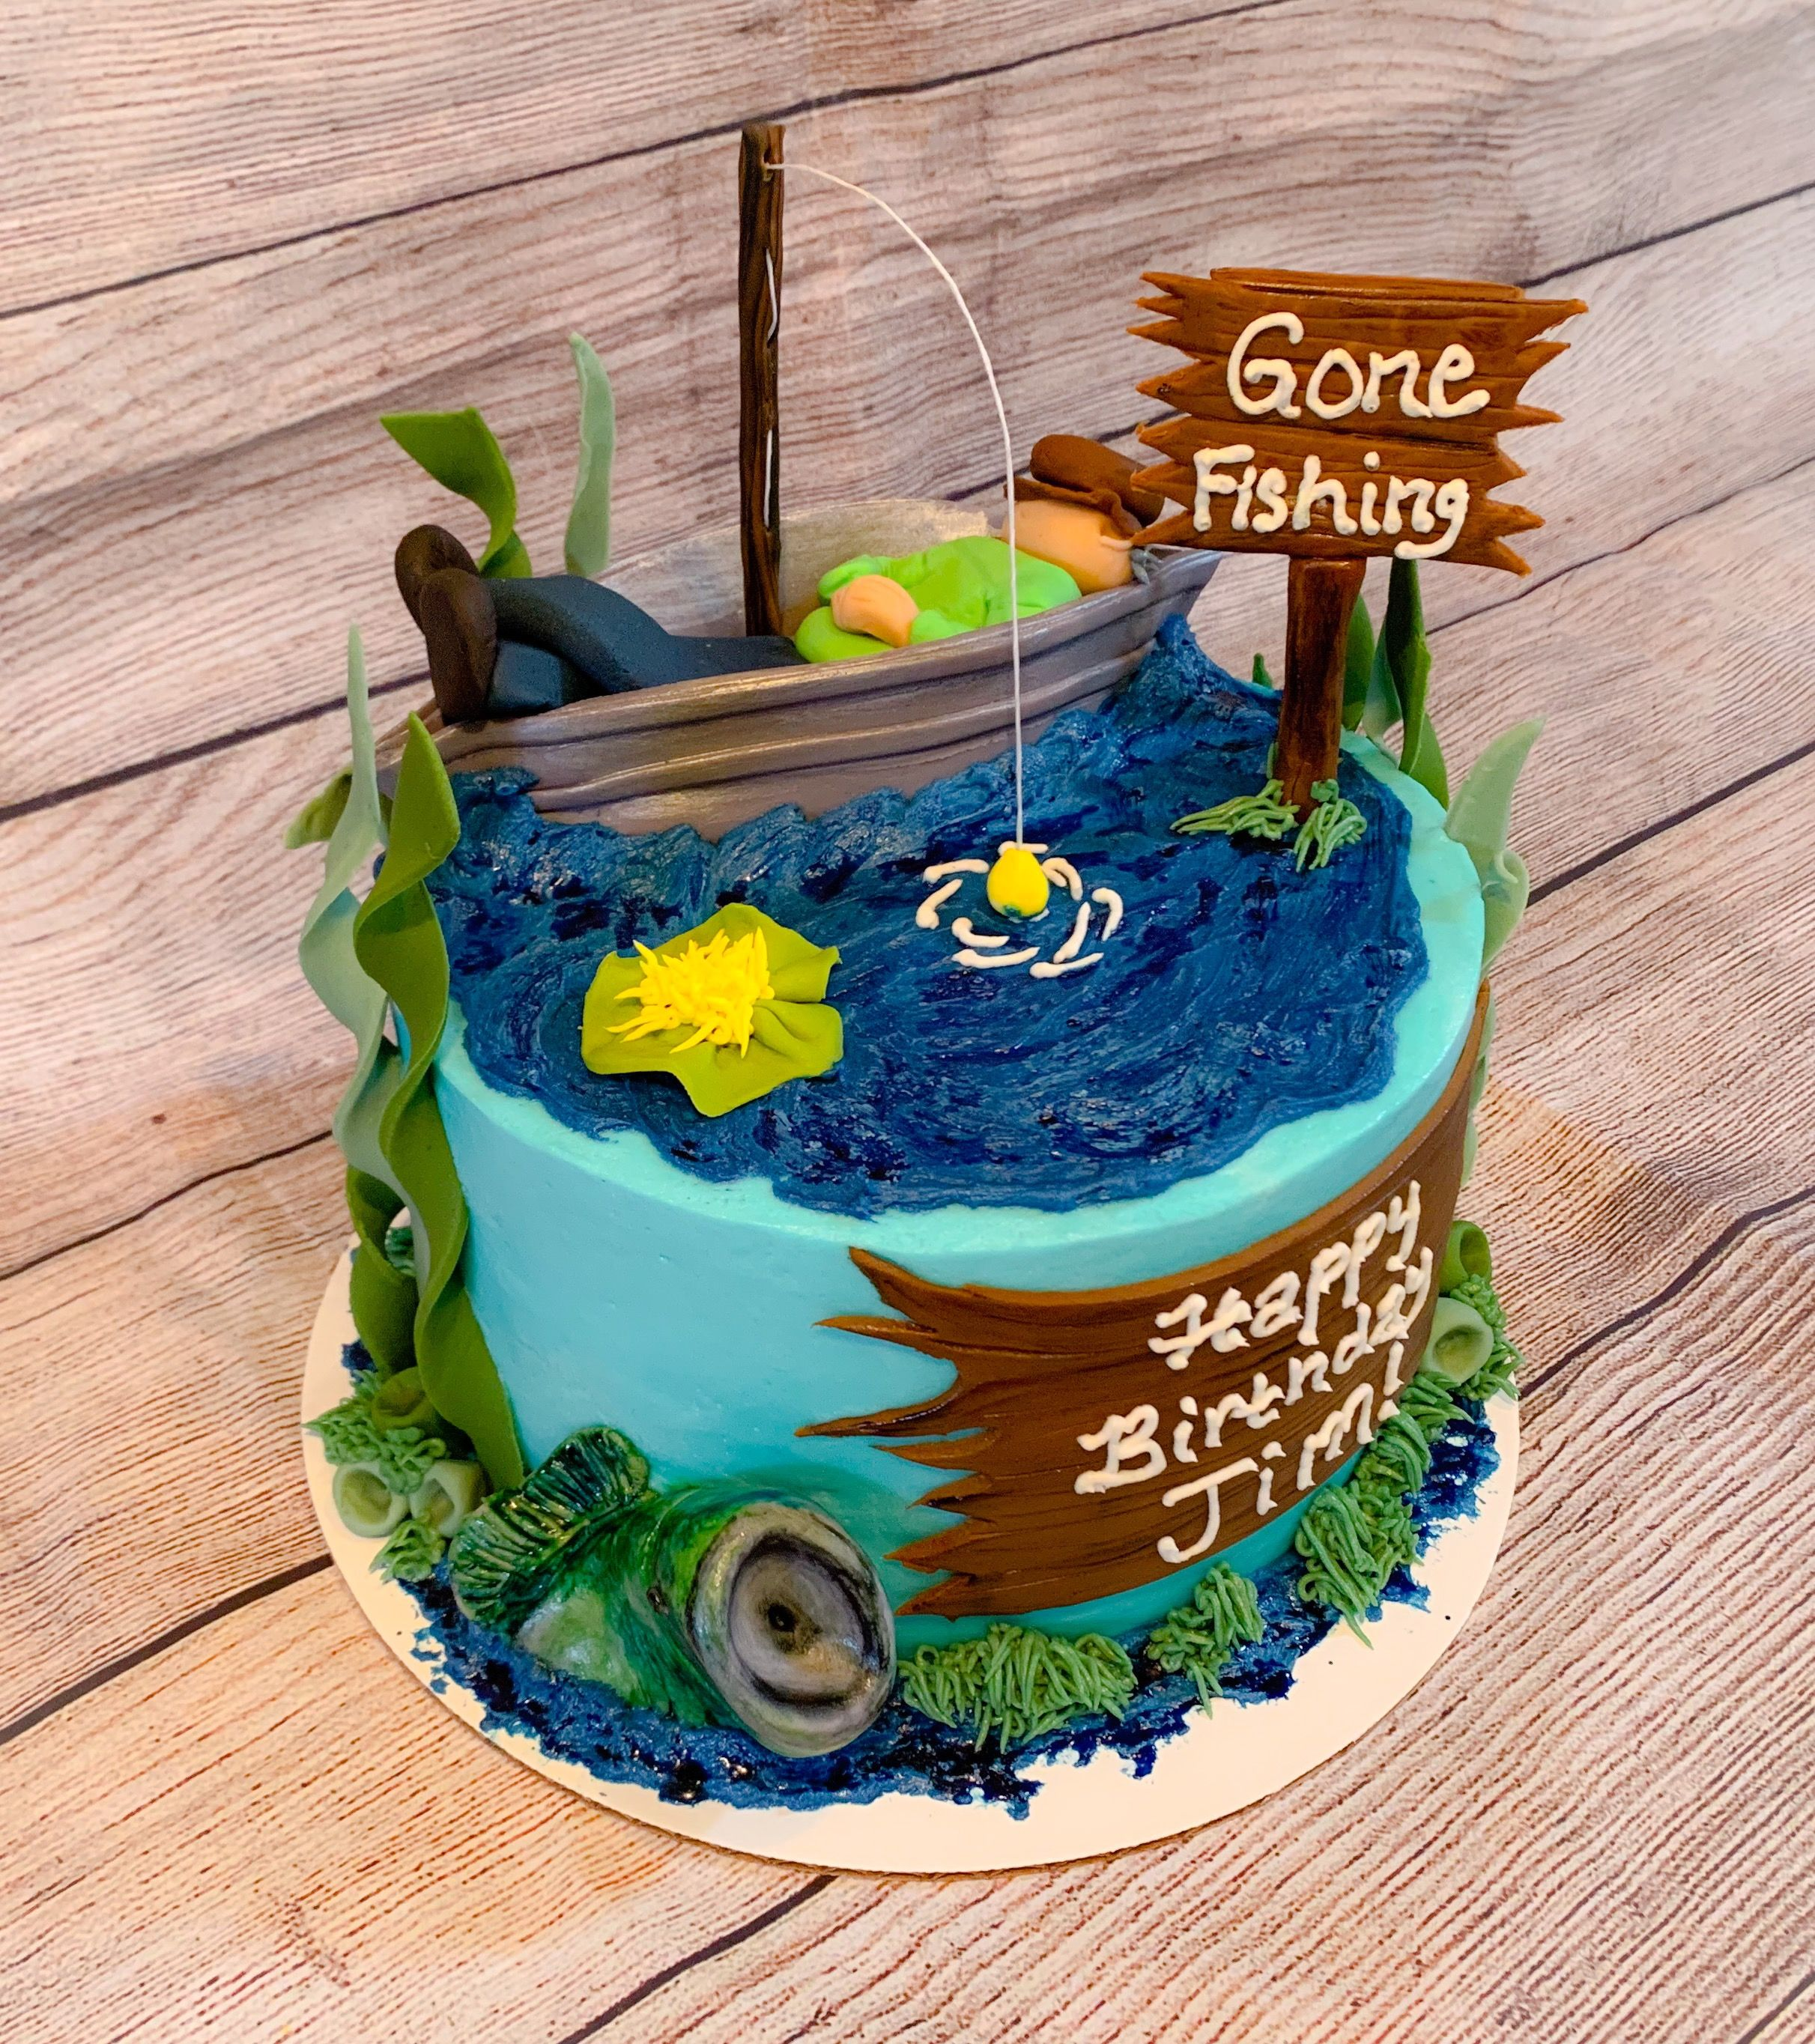 Big Mouth Bass Gone Fishing Cake With Images Gone Fishing